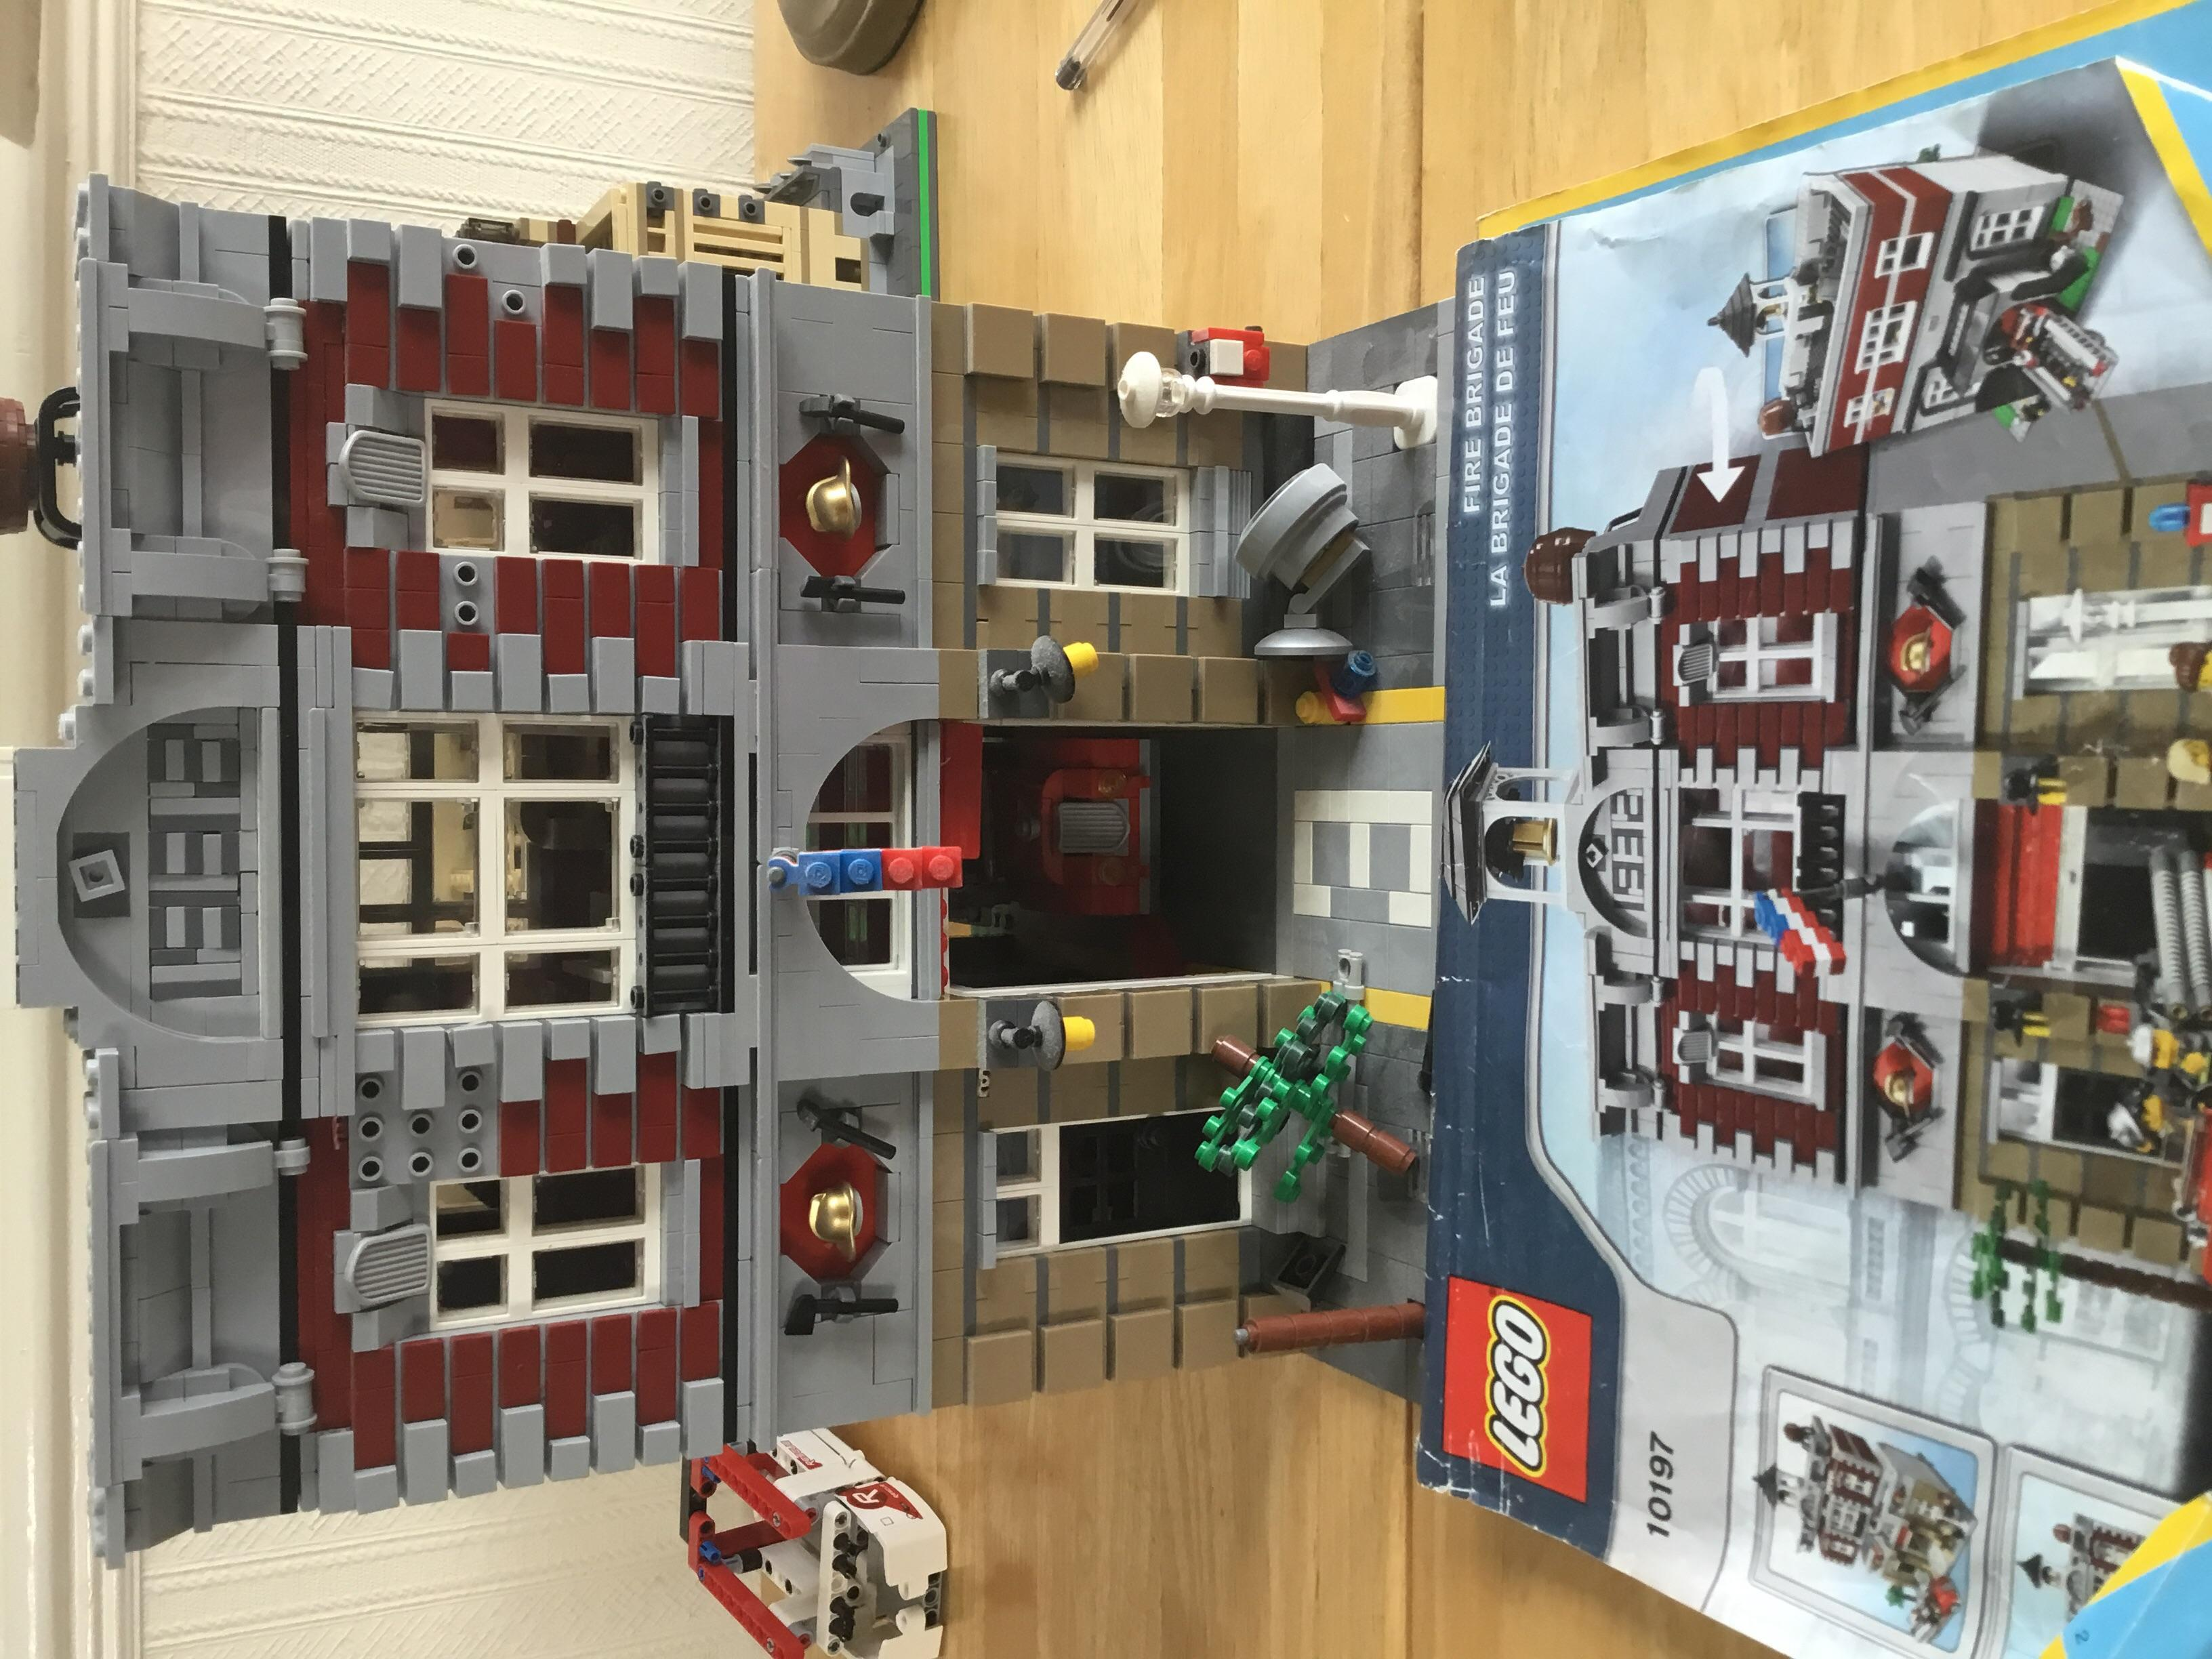 Lego creator fire station with instructions